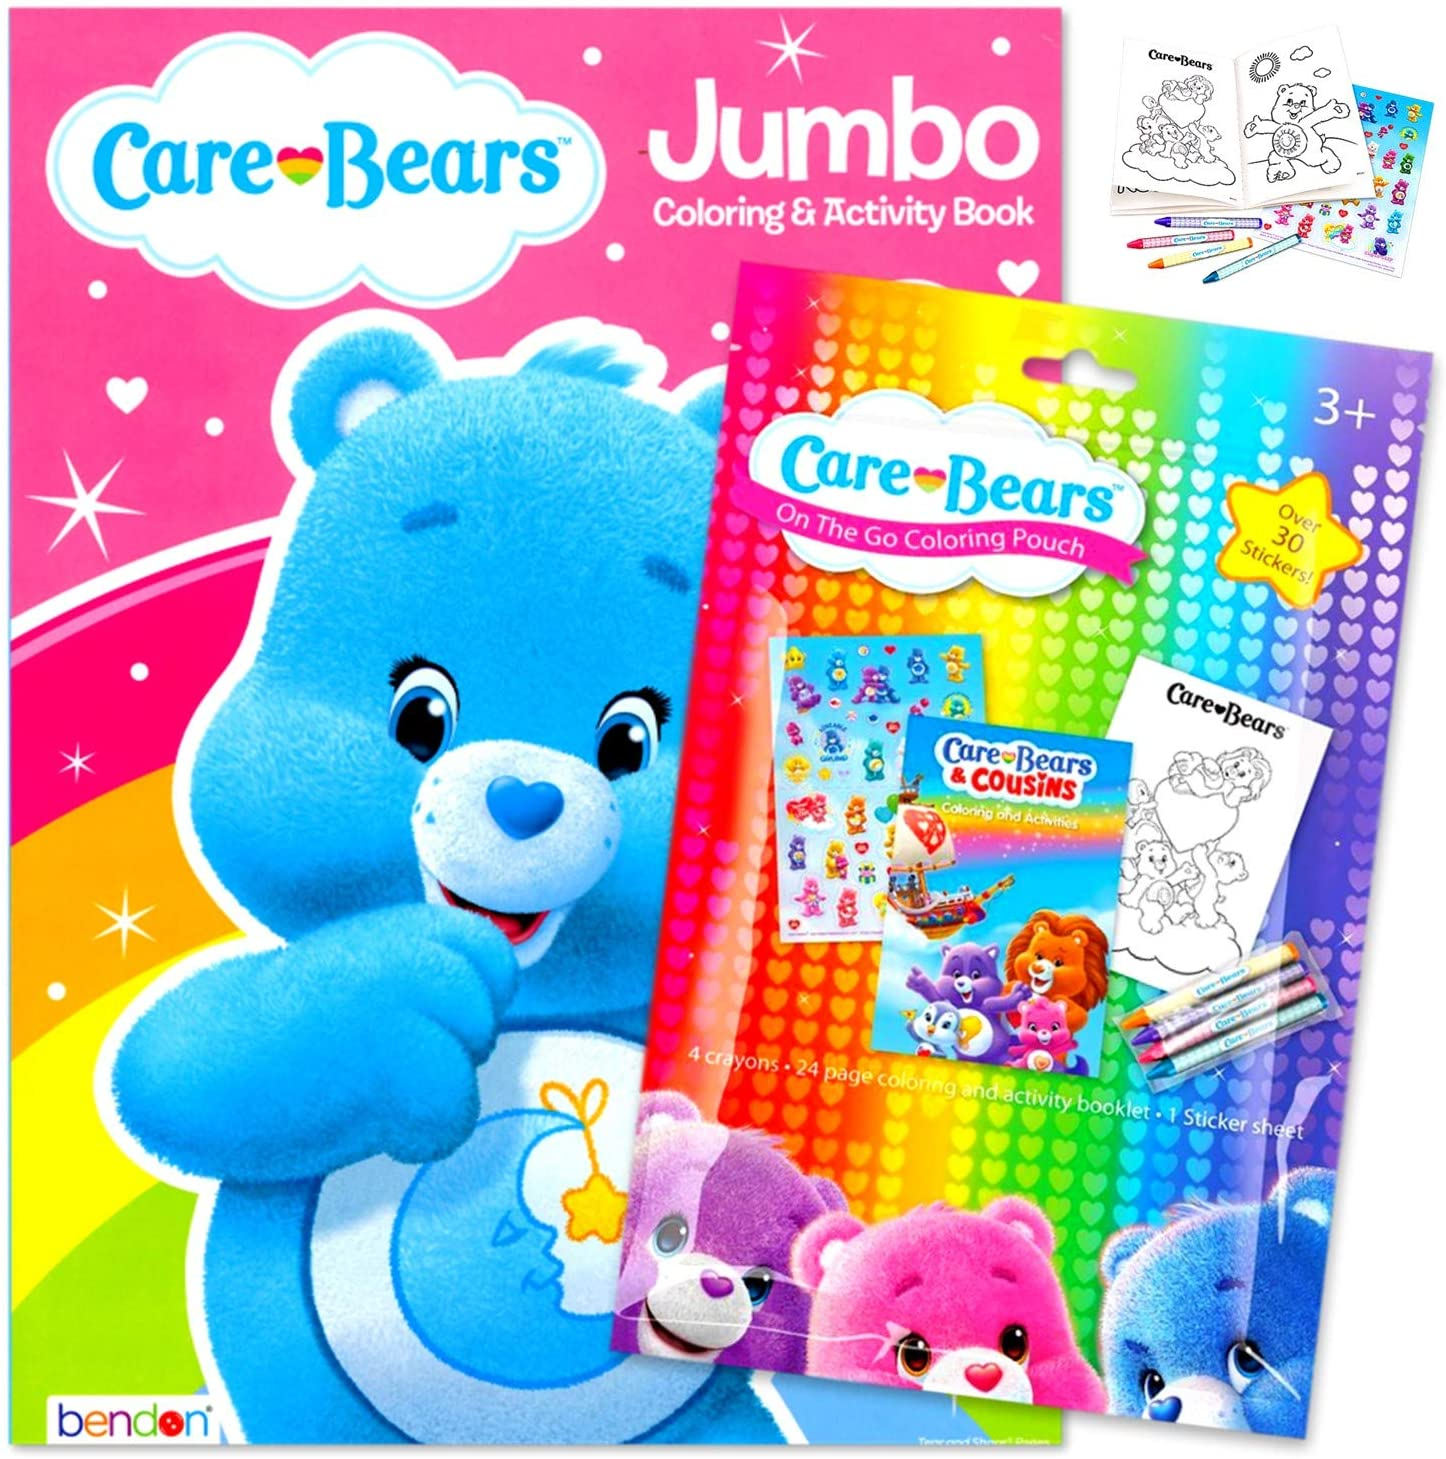 Care Bears Coloring Book Pack Bundle Includes Stickers, Crayons, and Care Bears Activity Book for Kids (Bedtime Bear)